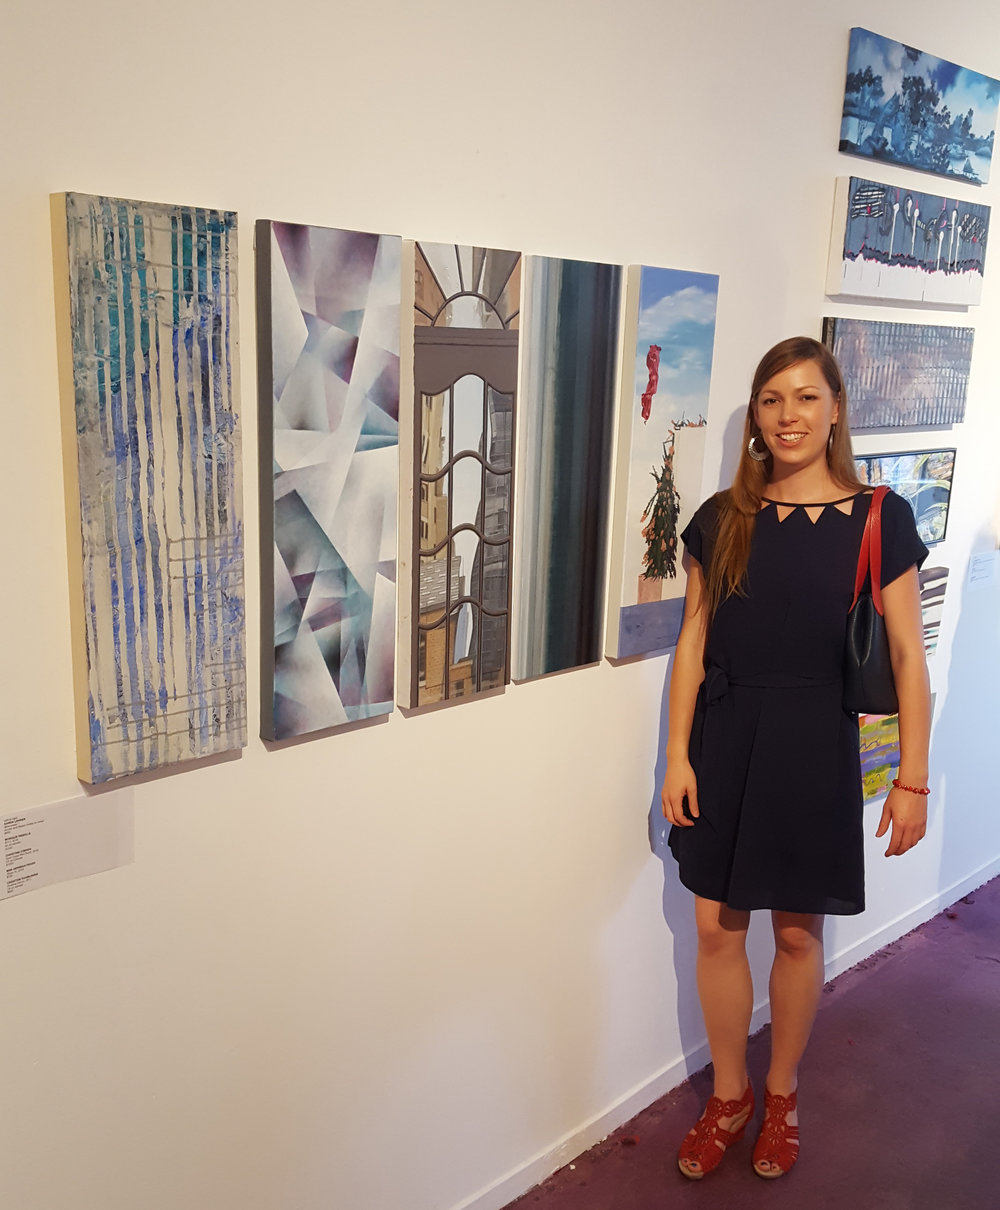 C. Rasmussen at BG Gallery, May 5, 2018